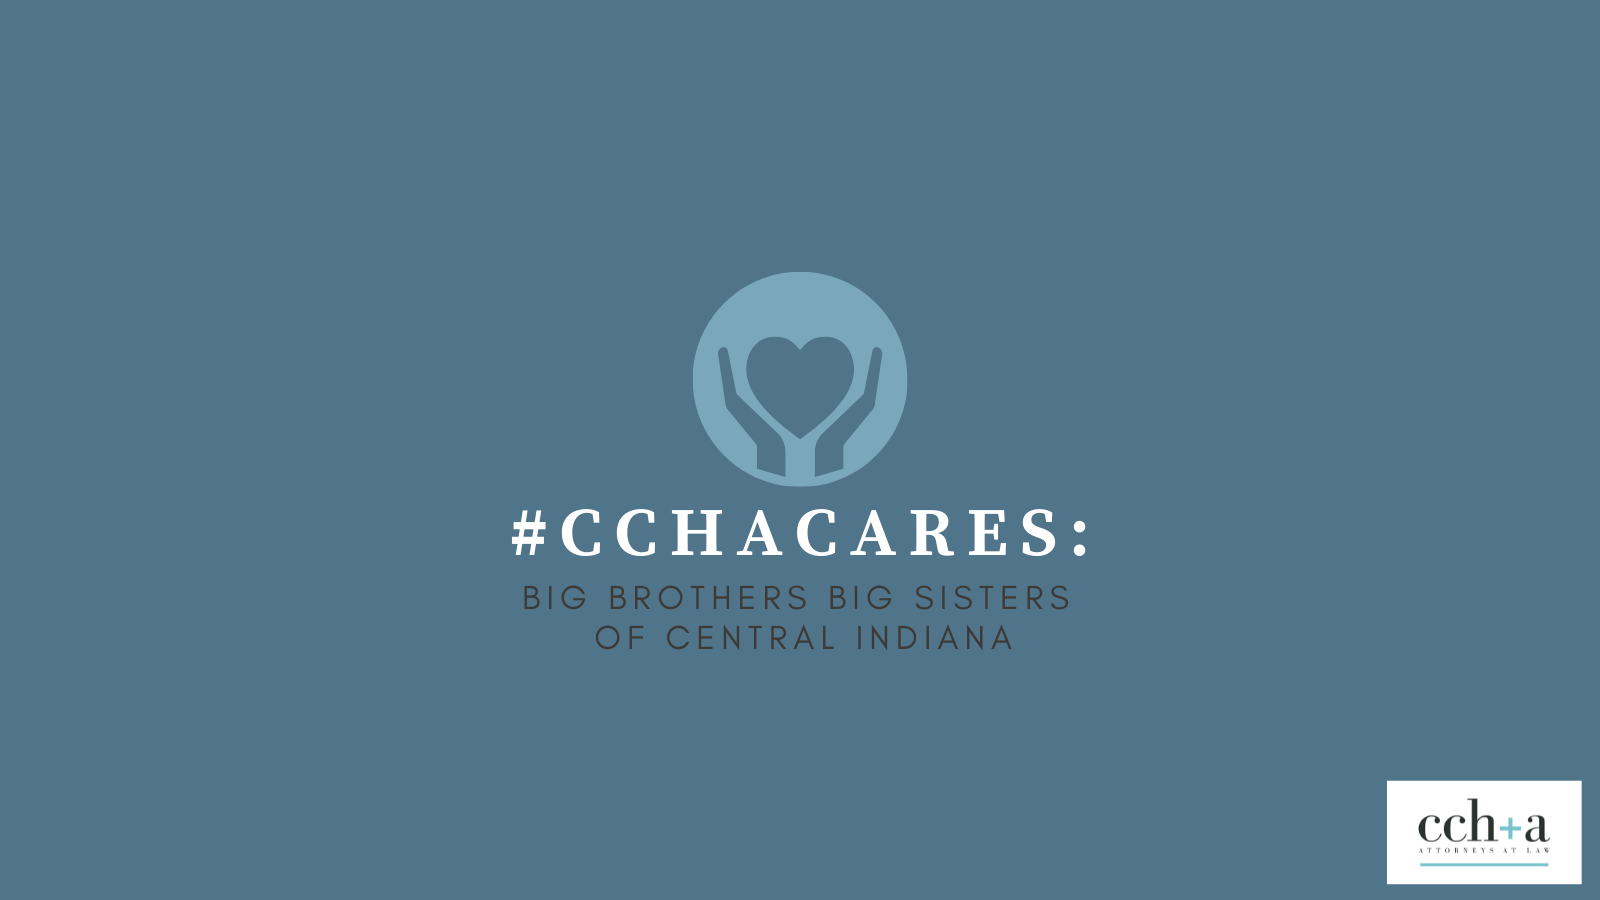 CCHA Cares July 2021 Big Brothers Big Sisters central indiana TW